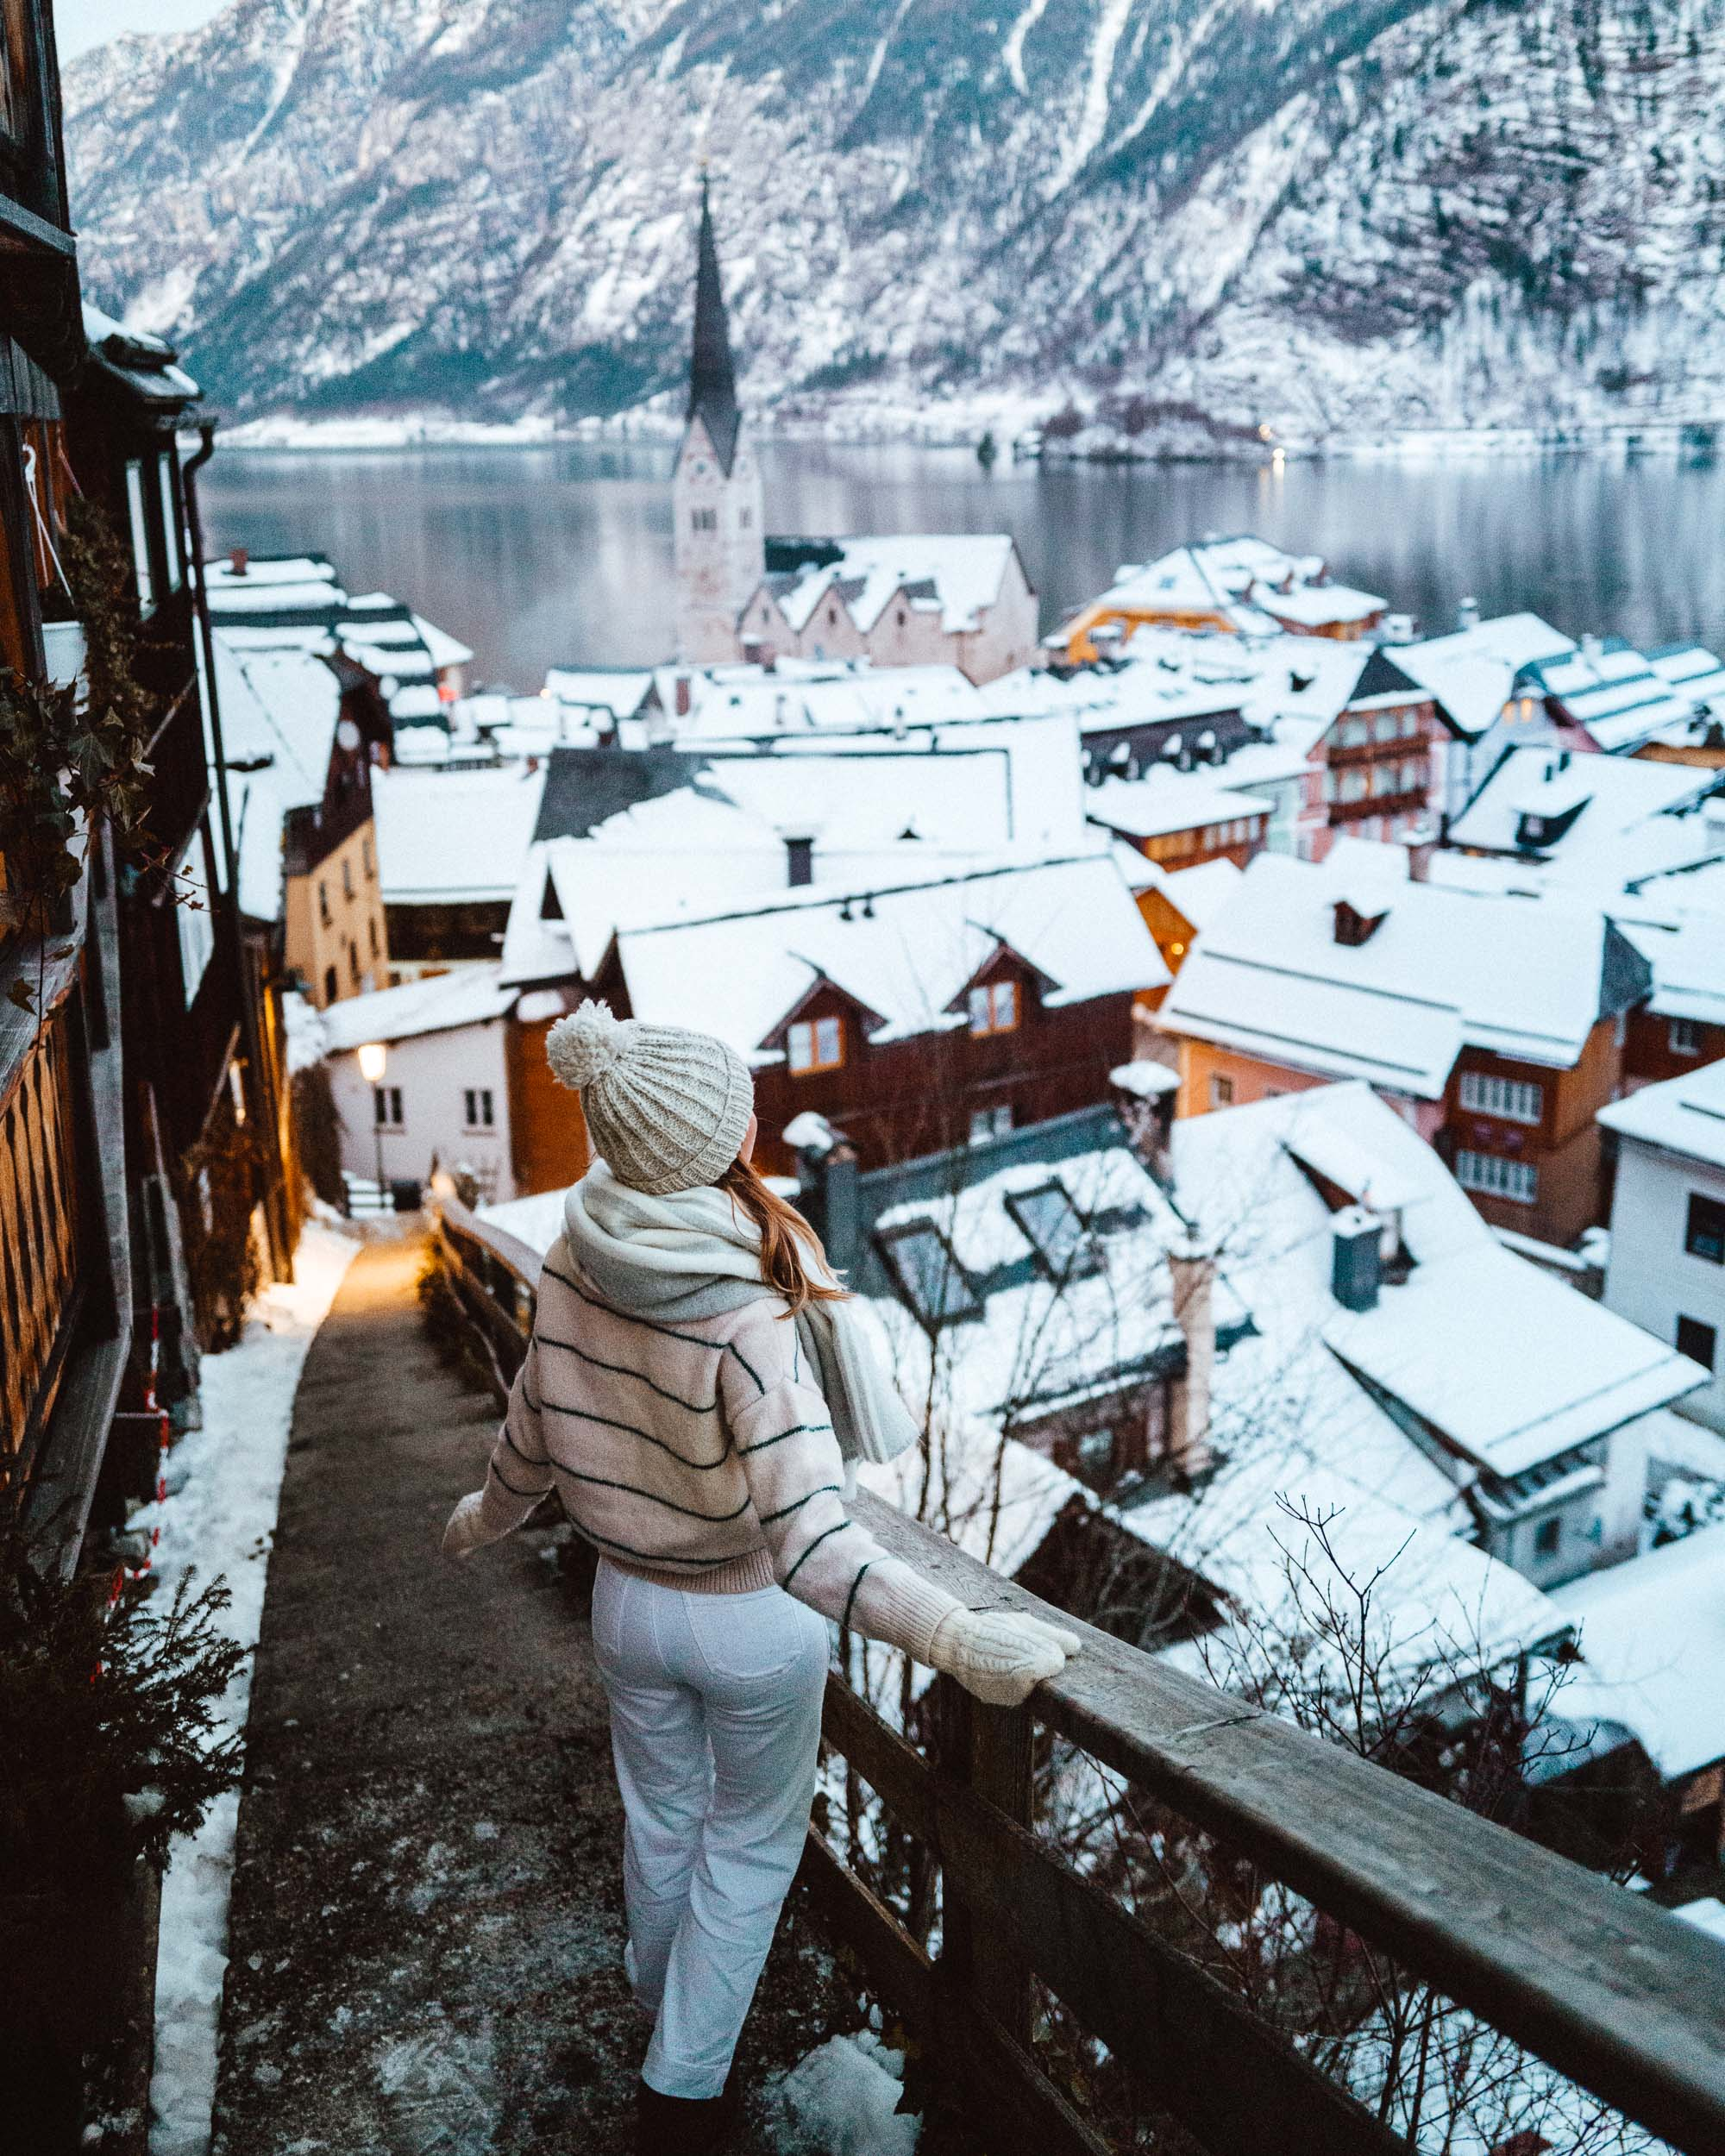 Staircase with view of Hallstatt Austria rooftops in wintertime with snow and church in the background